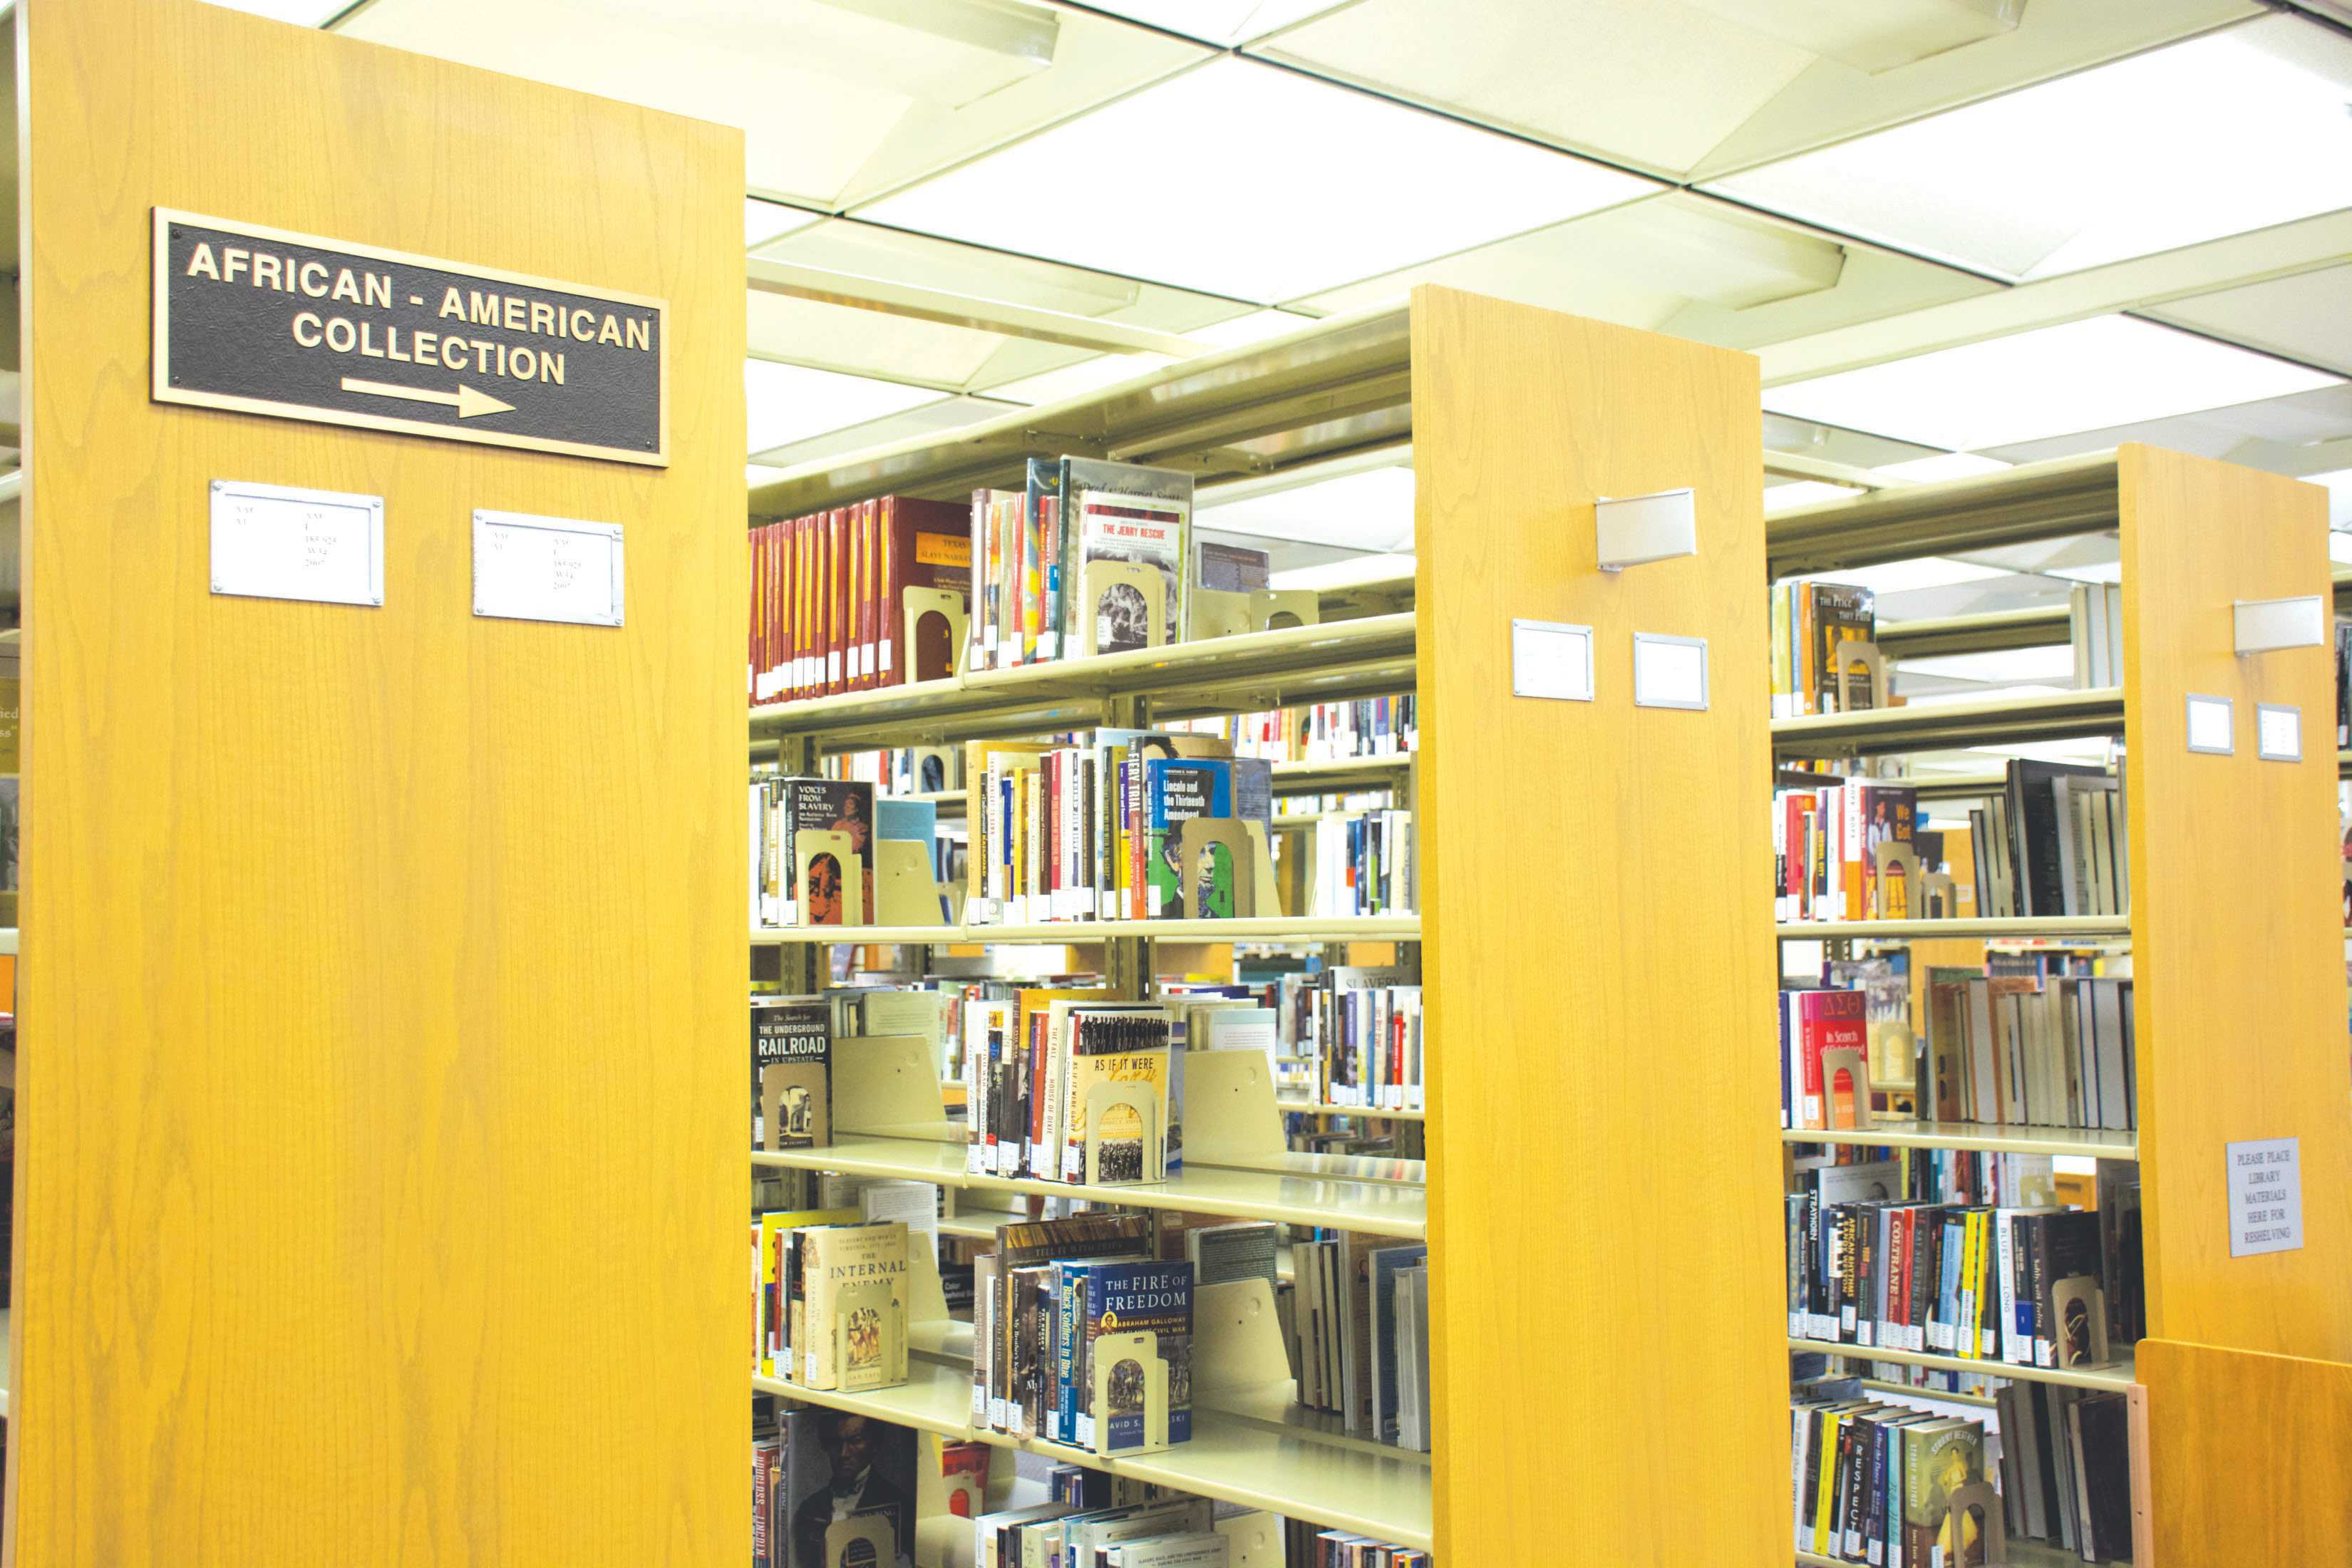 Rogers Library works to expand the African-American Collection to accommodate the new program on African and African American Studies. The library currently has approximately 3000 titles, but they hope to continue to add more as the program grows.